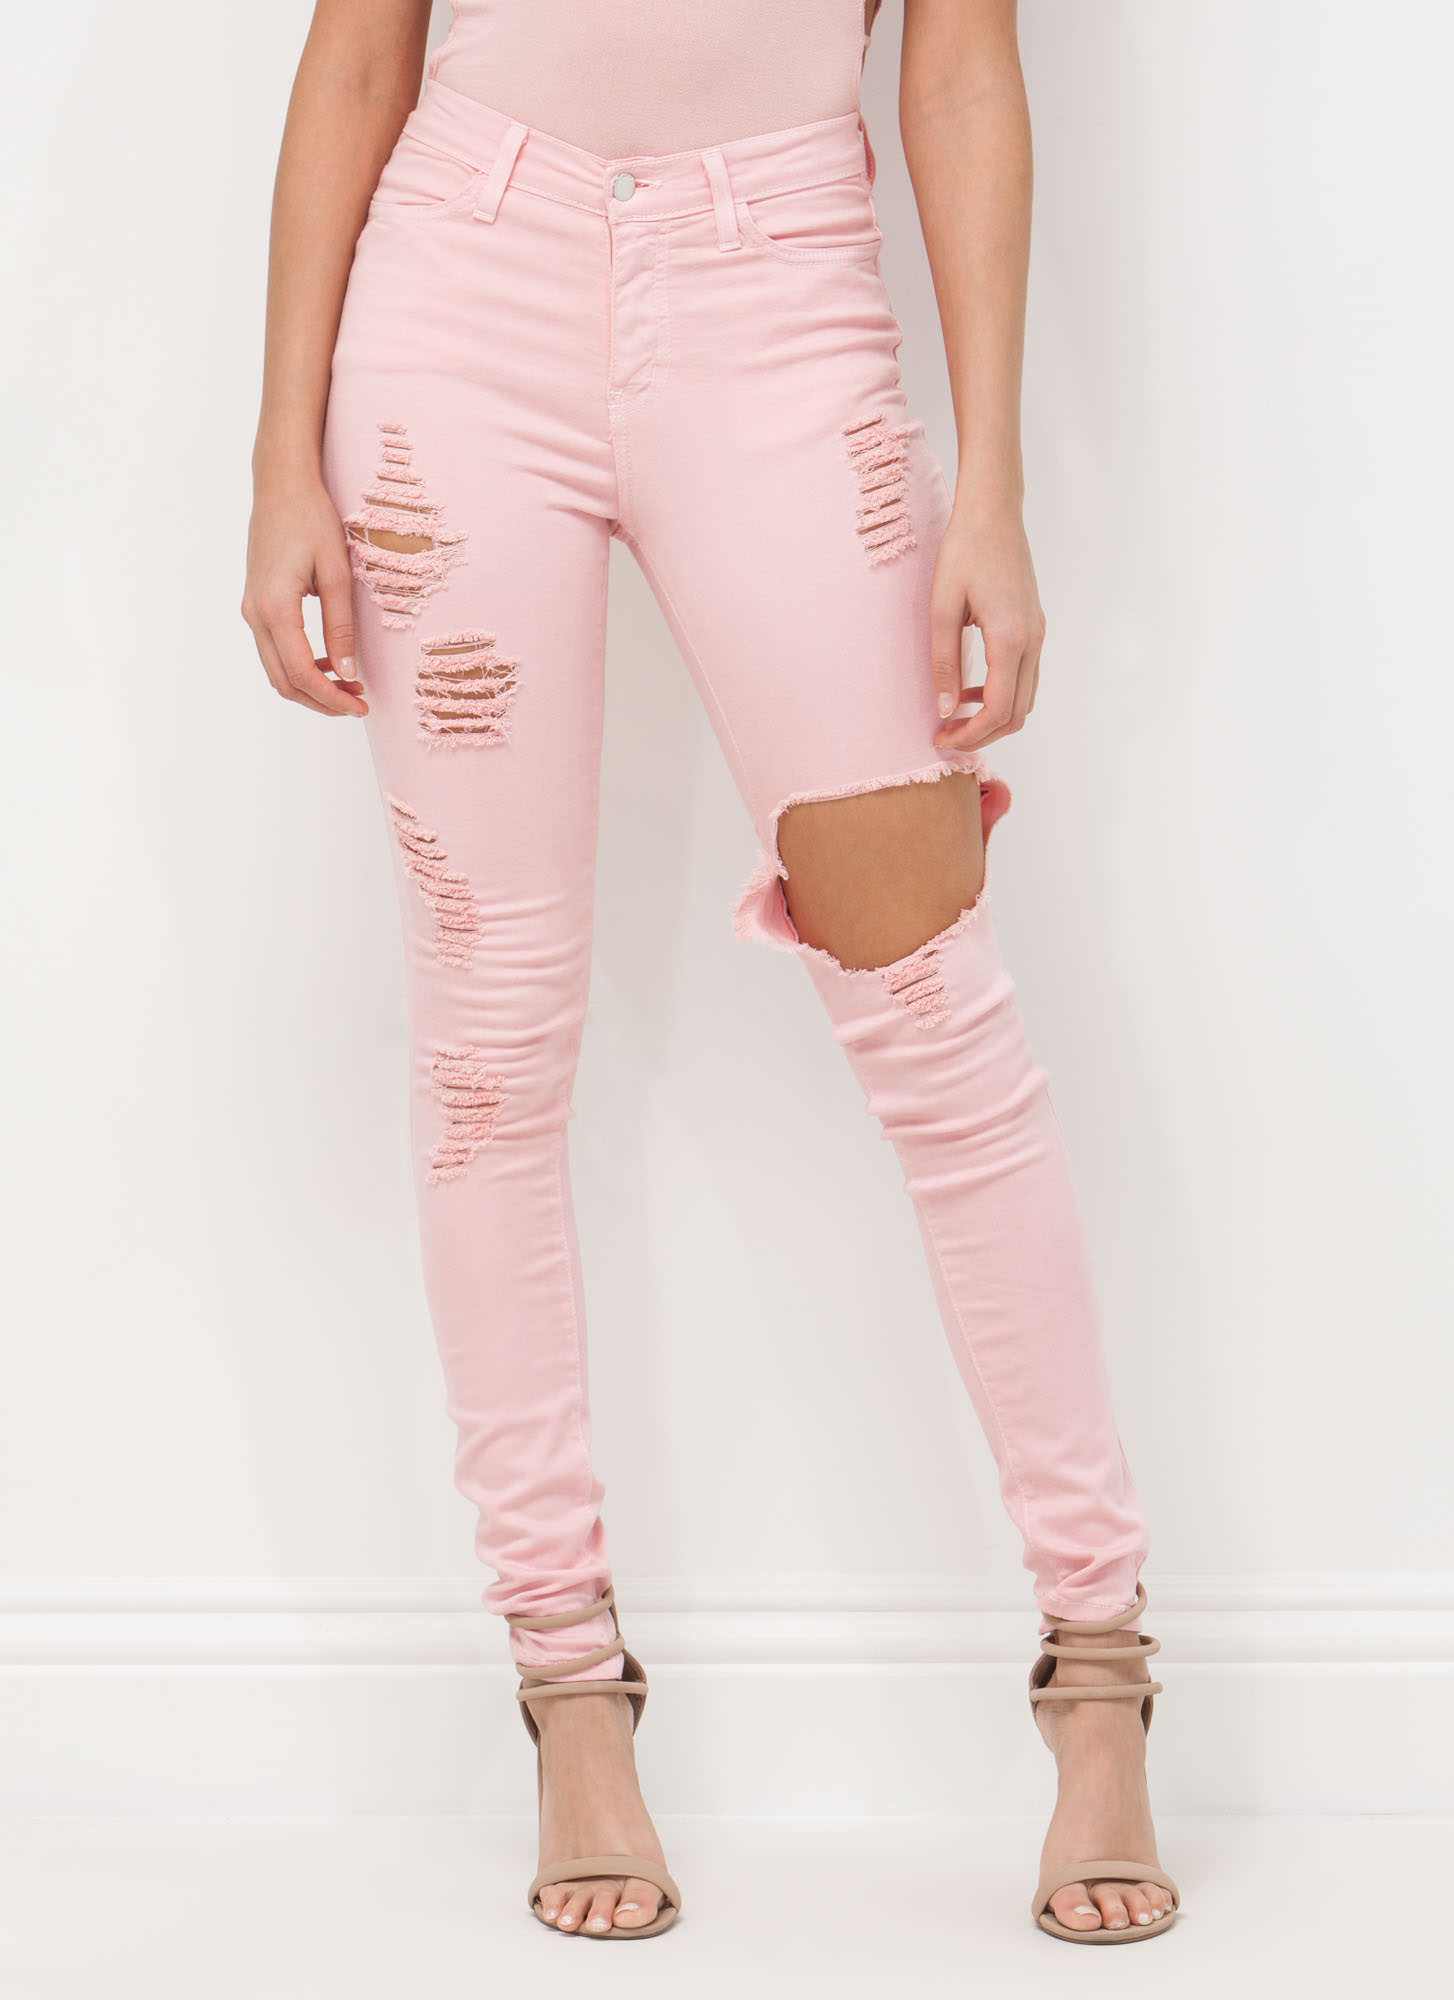 To Shreds Distressed Skinny Jeans PINK MINT BABYBLUE KHAKI LILAC ...